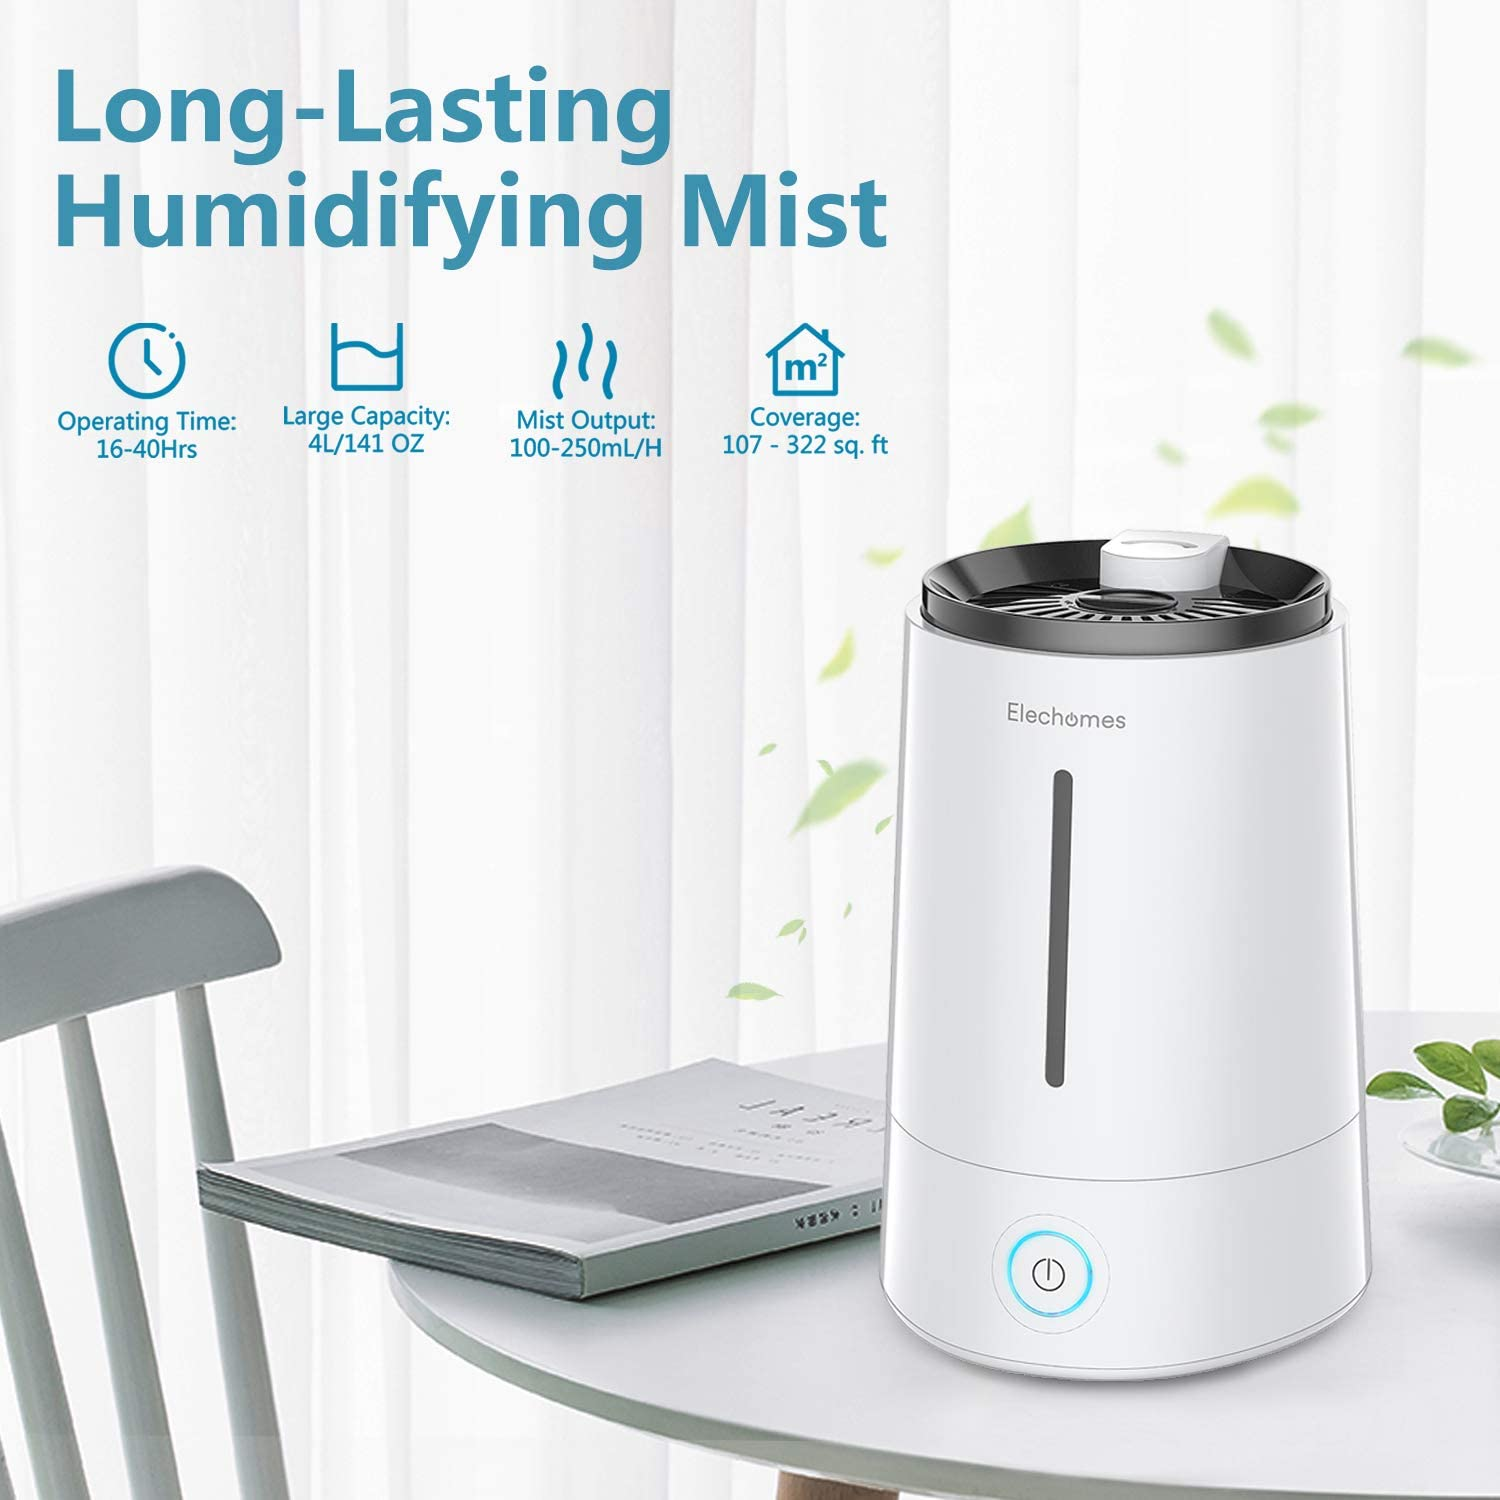 ELECHOMES Ultrasonic Cool Mist Humidifier Top Fill Humidifiers 4L Vaporizer for Bedroom Baby Home Office Large Room with Aromatherapy and Filter, Last up to 40 Hours, Whisper-Quiet